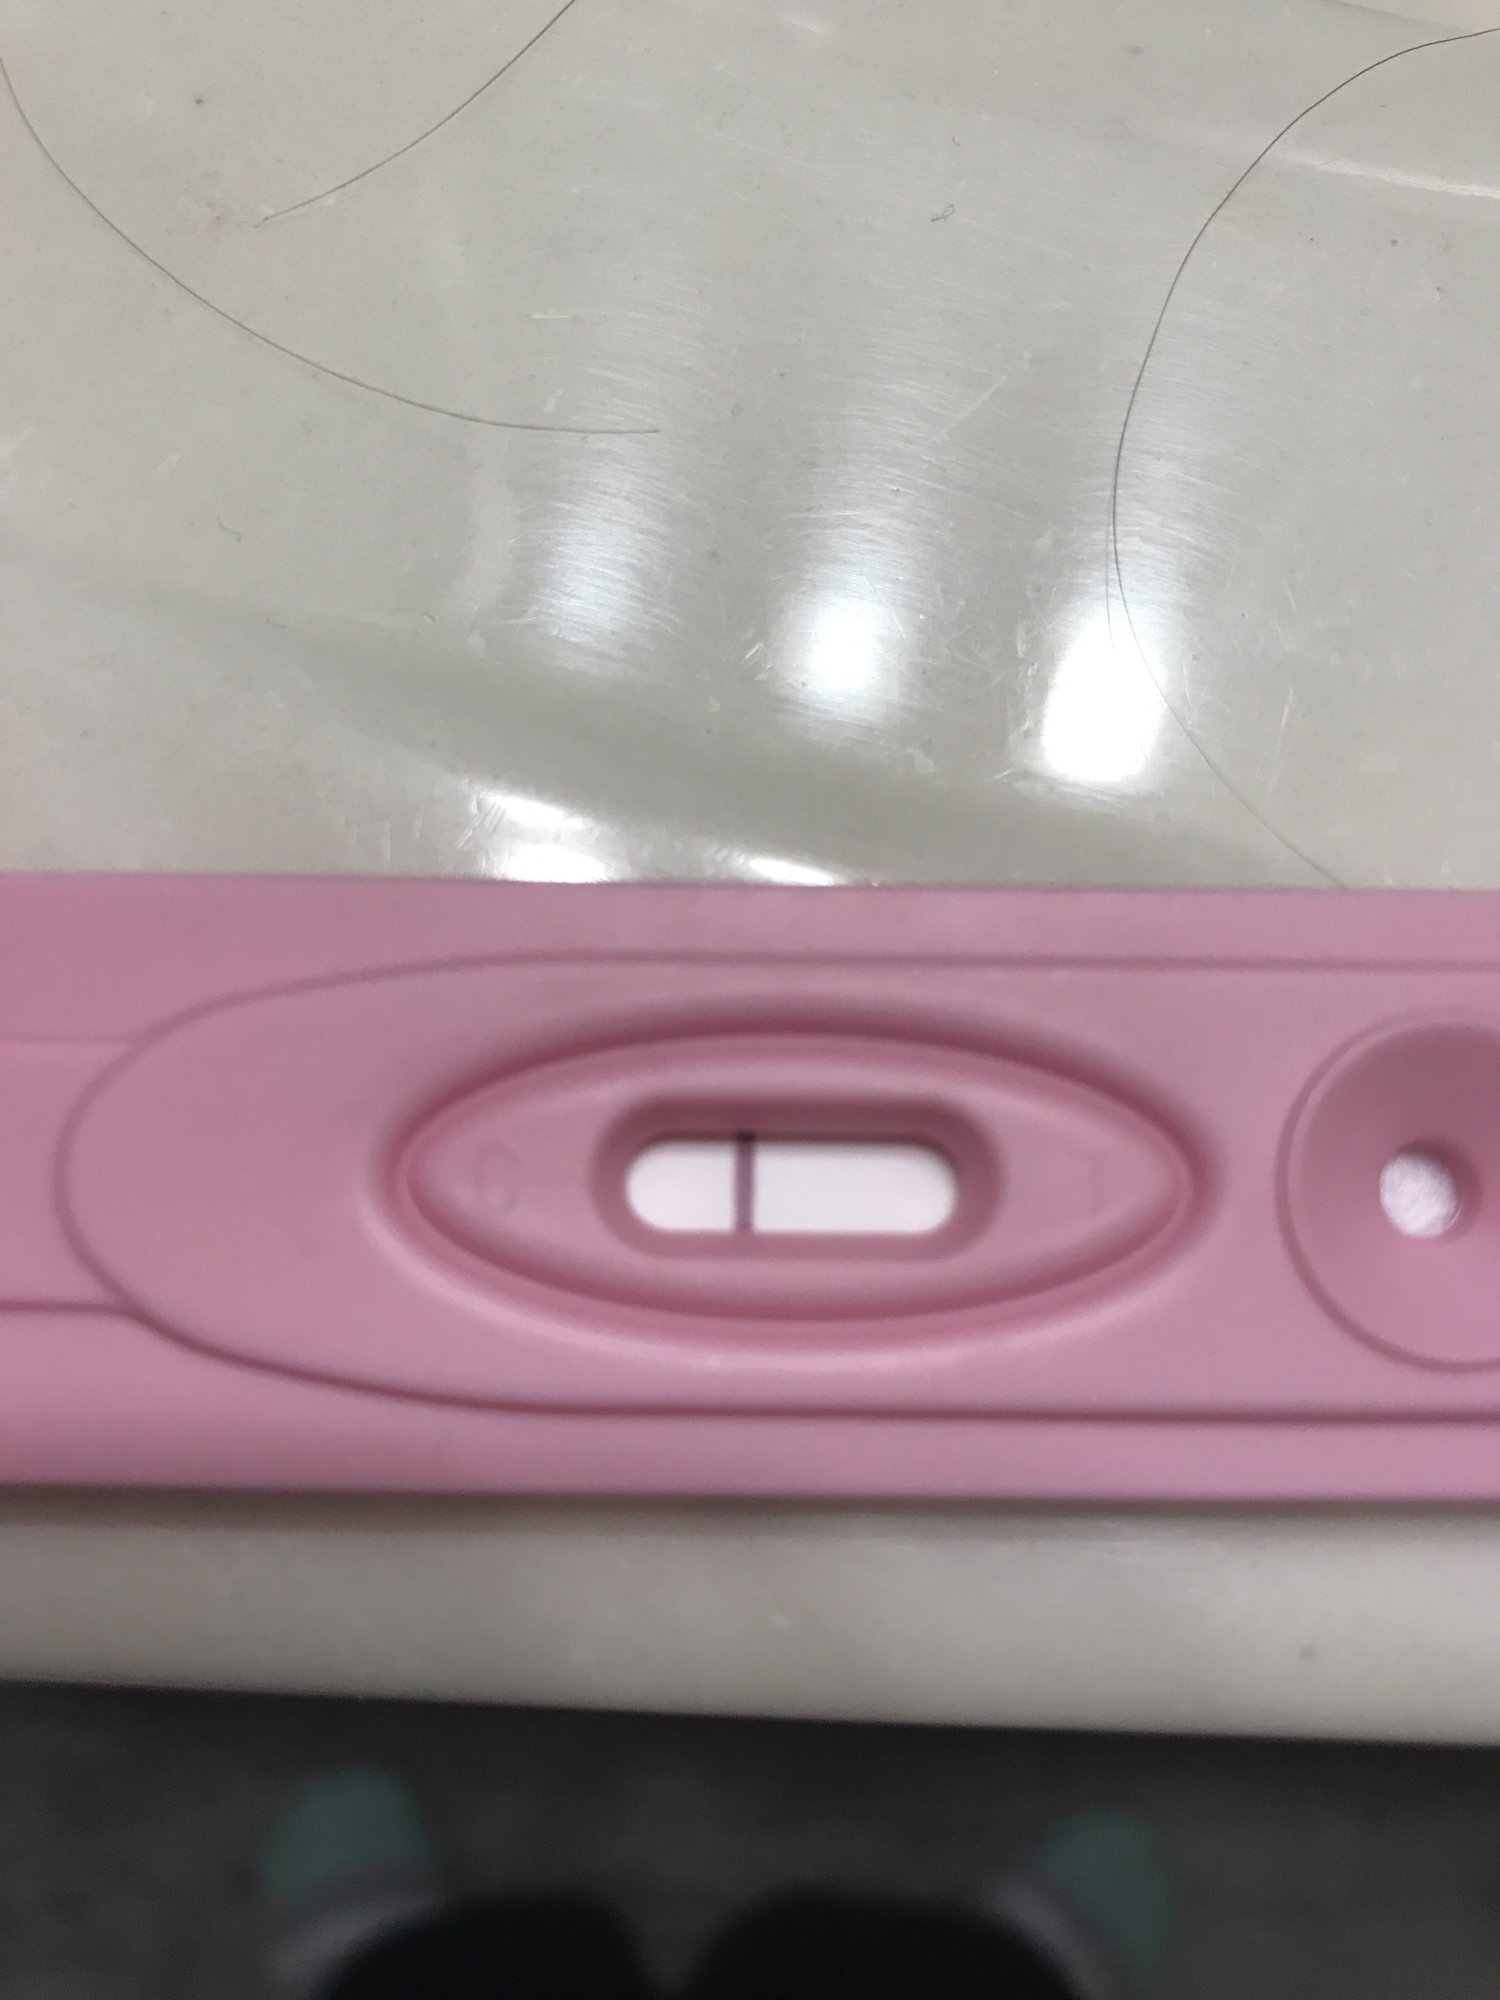 What does a positive pregnancy test really look like Page 23